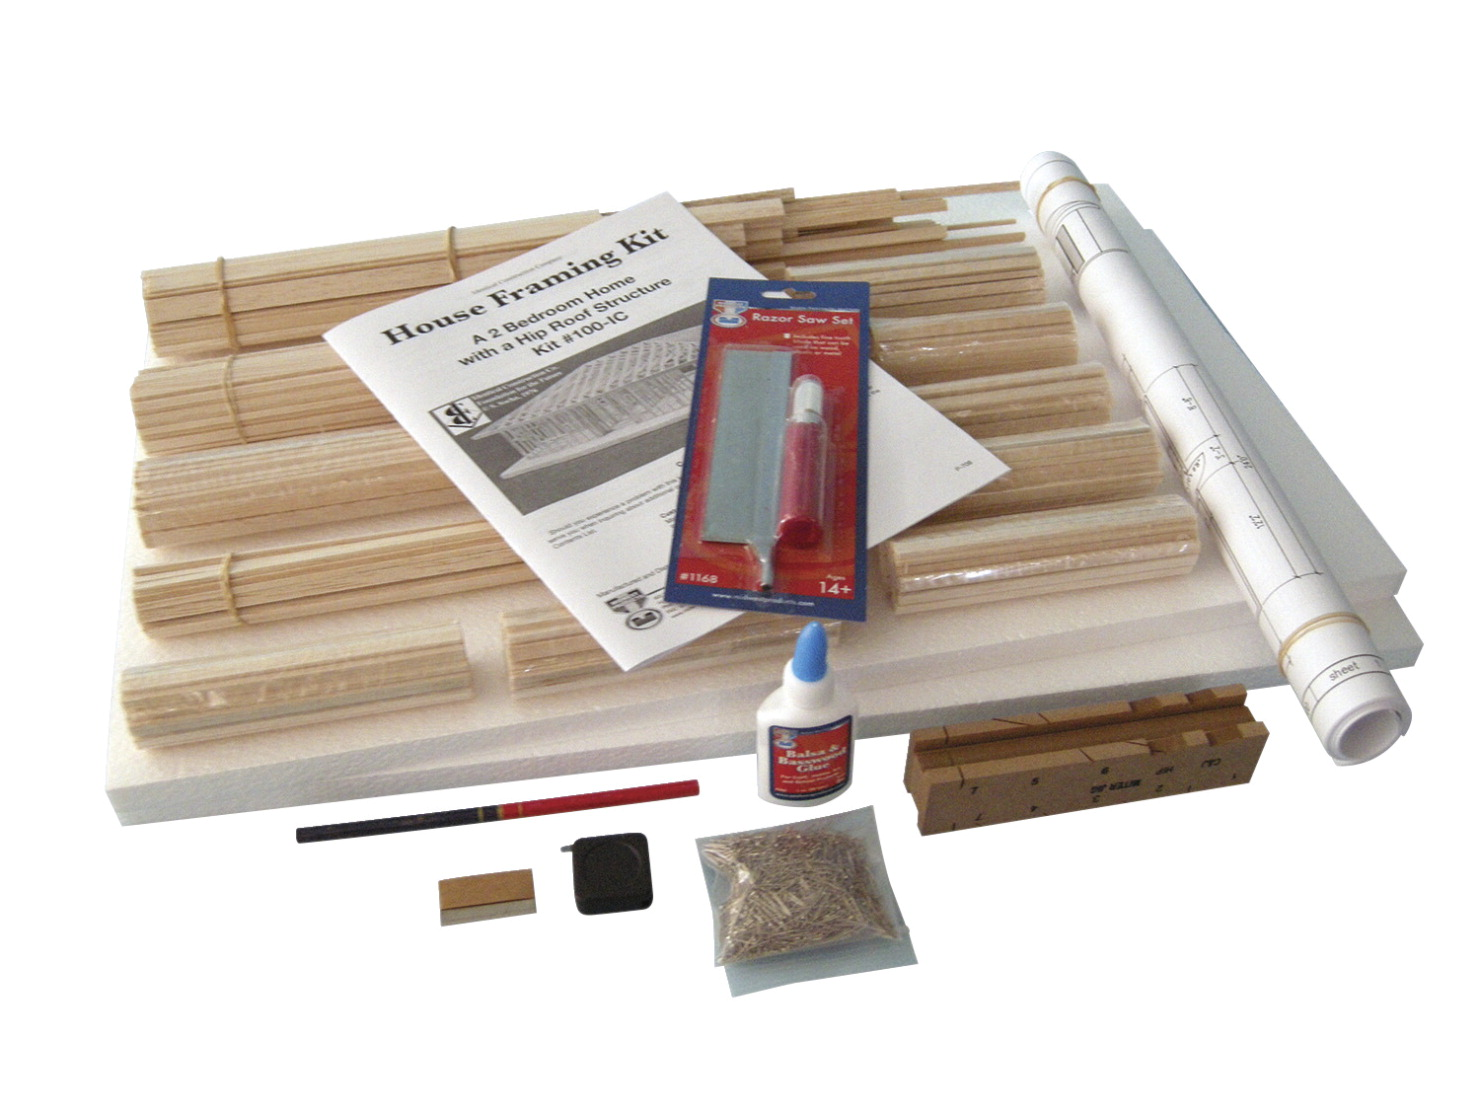 House Framing Kit - SCHOOL SPECIALTY MARKETPLACE